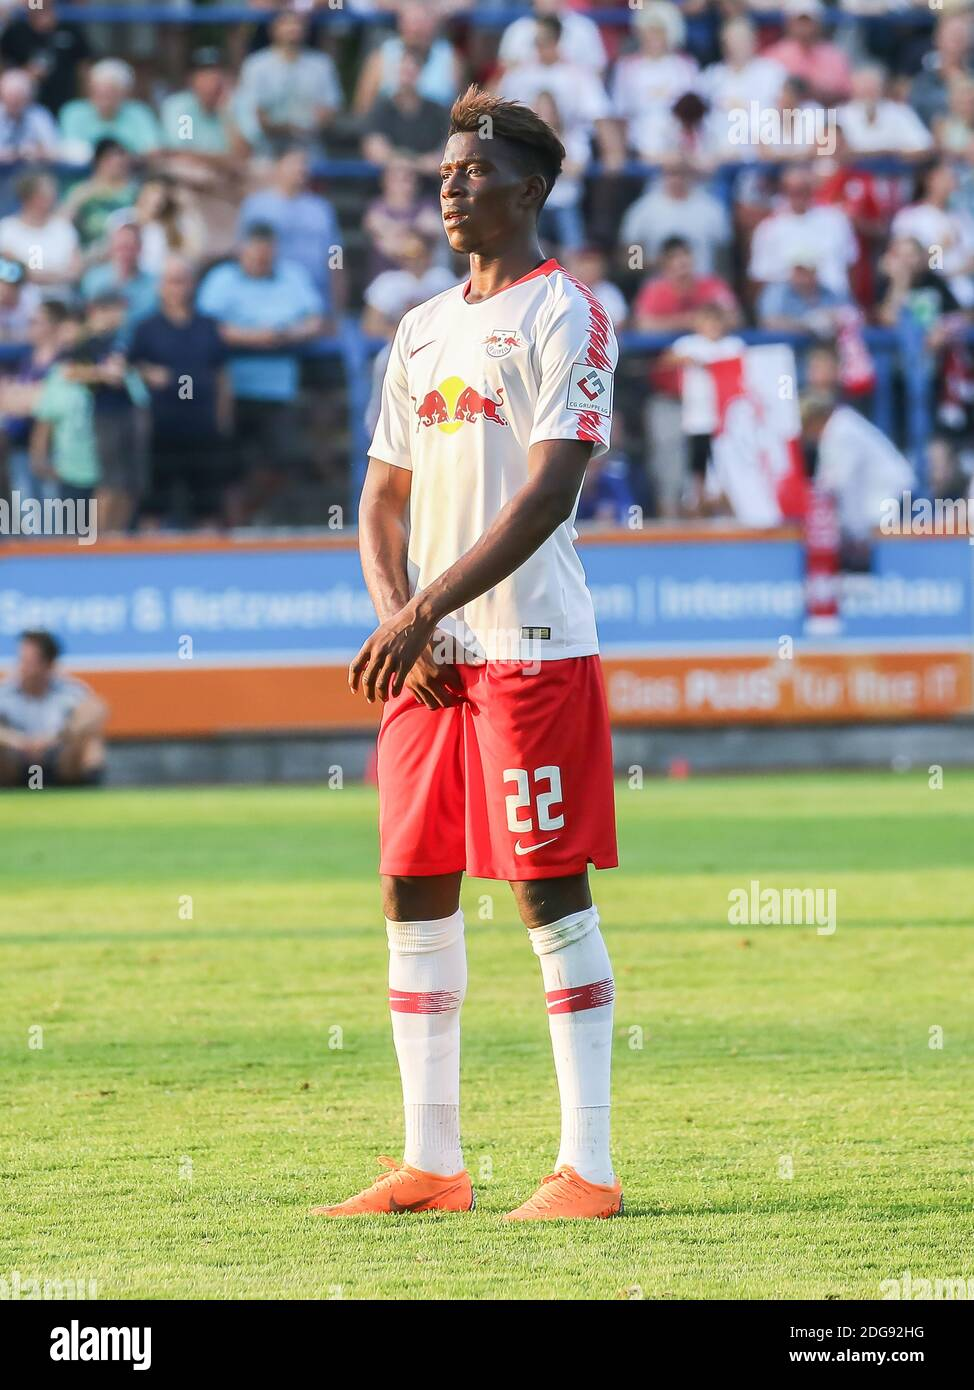 Nordi Mukiele Rb Leipzig High Resolution Stock Photography and ...